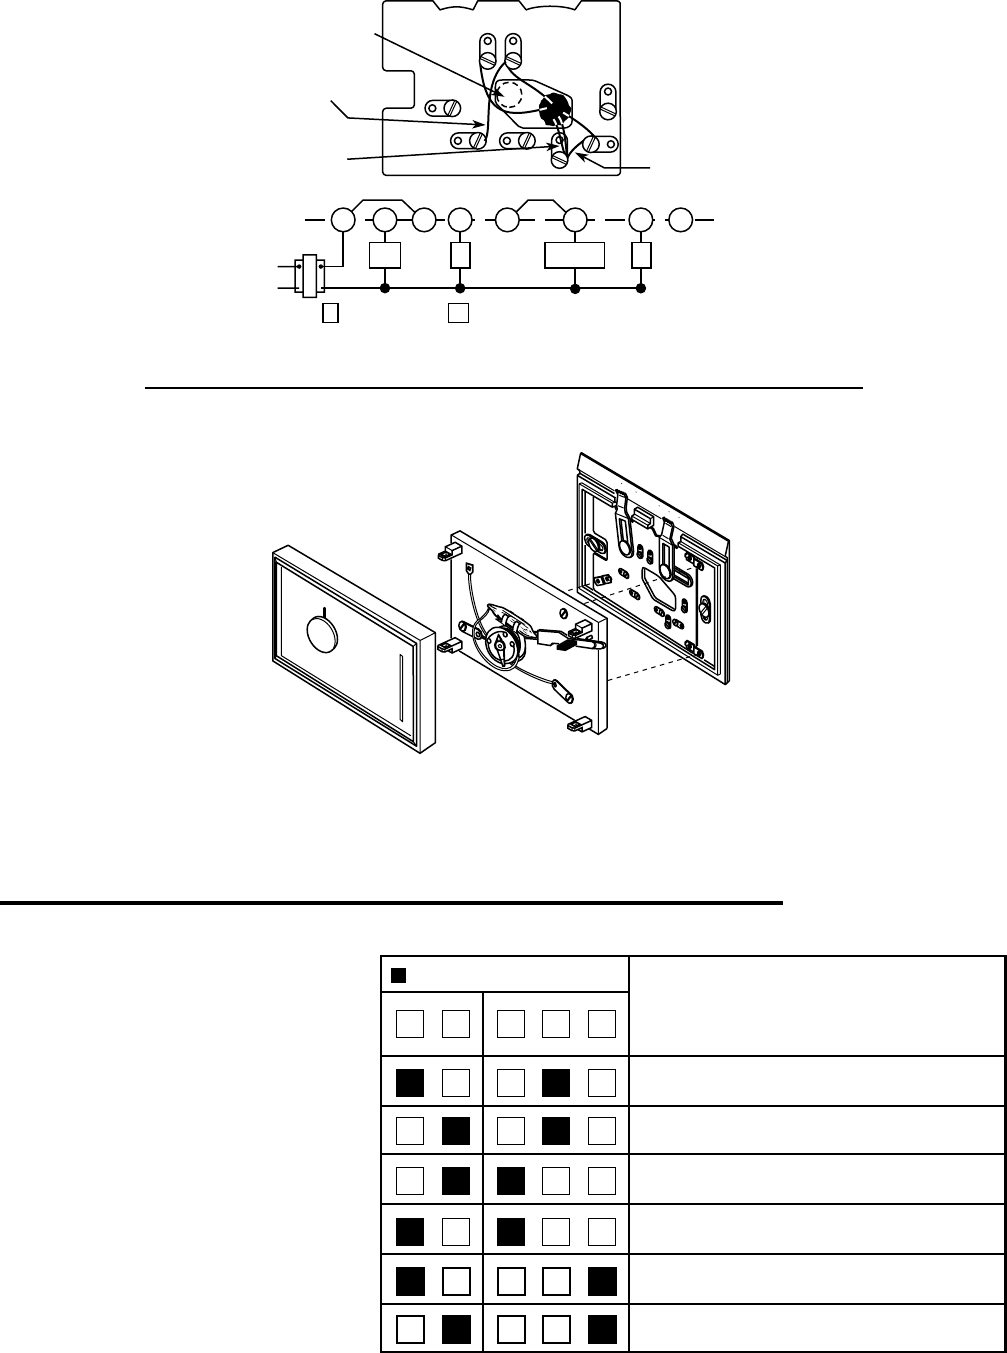 White Rodgers 1f56w-444 Wiring Diagram